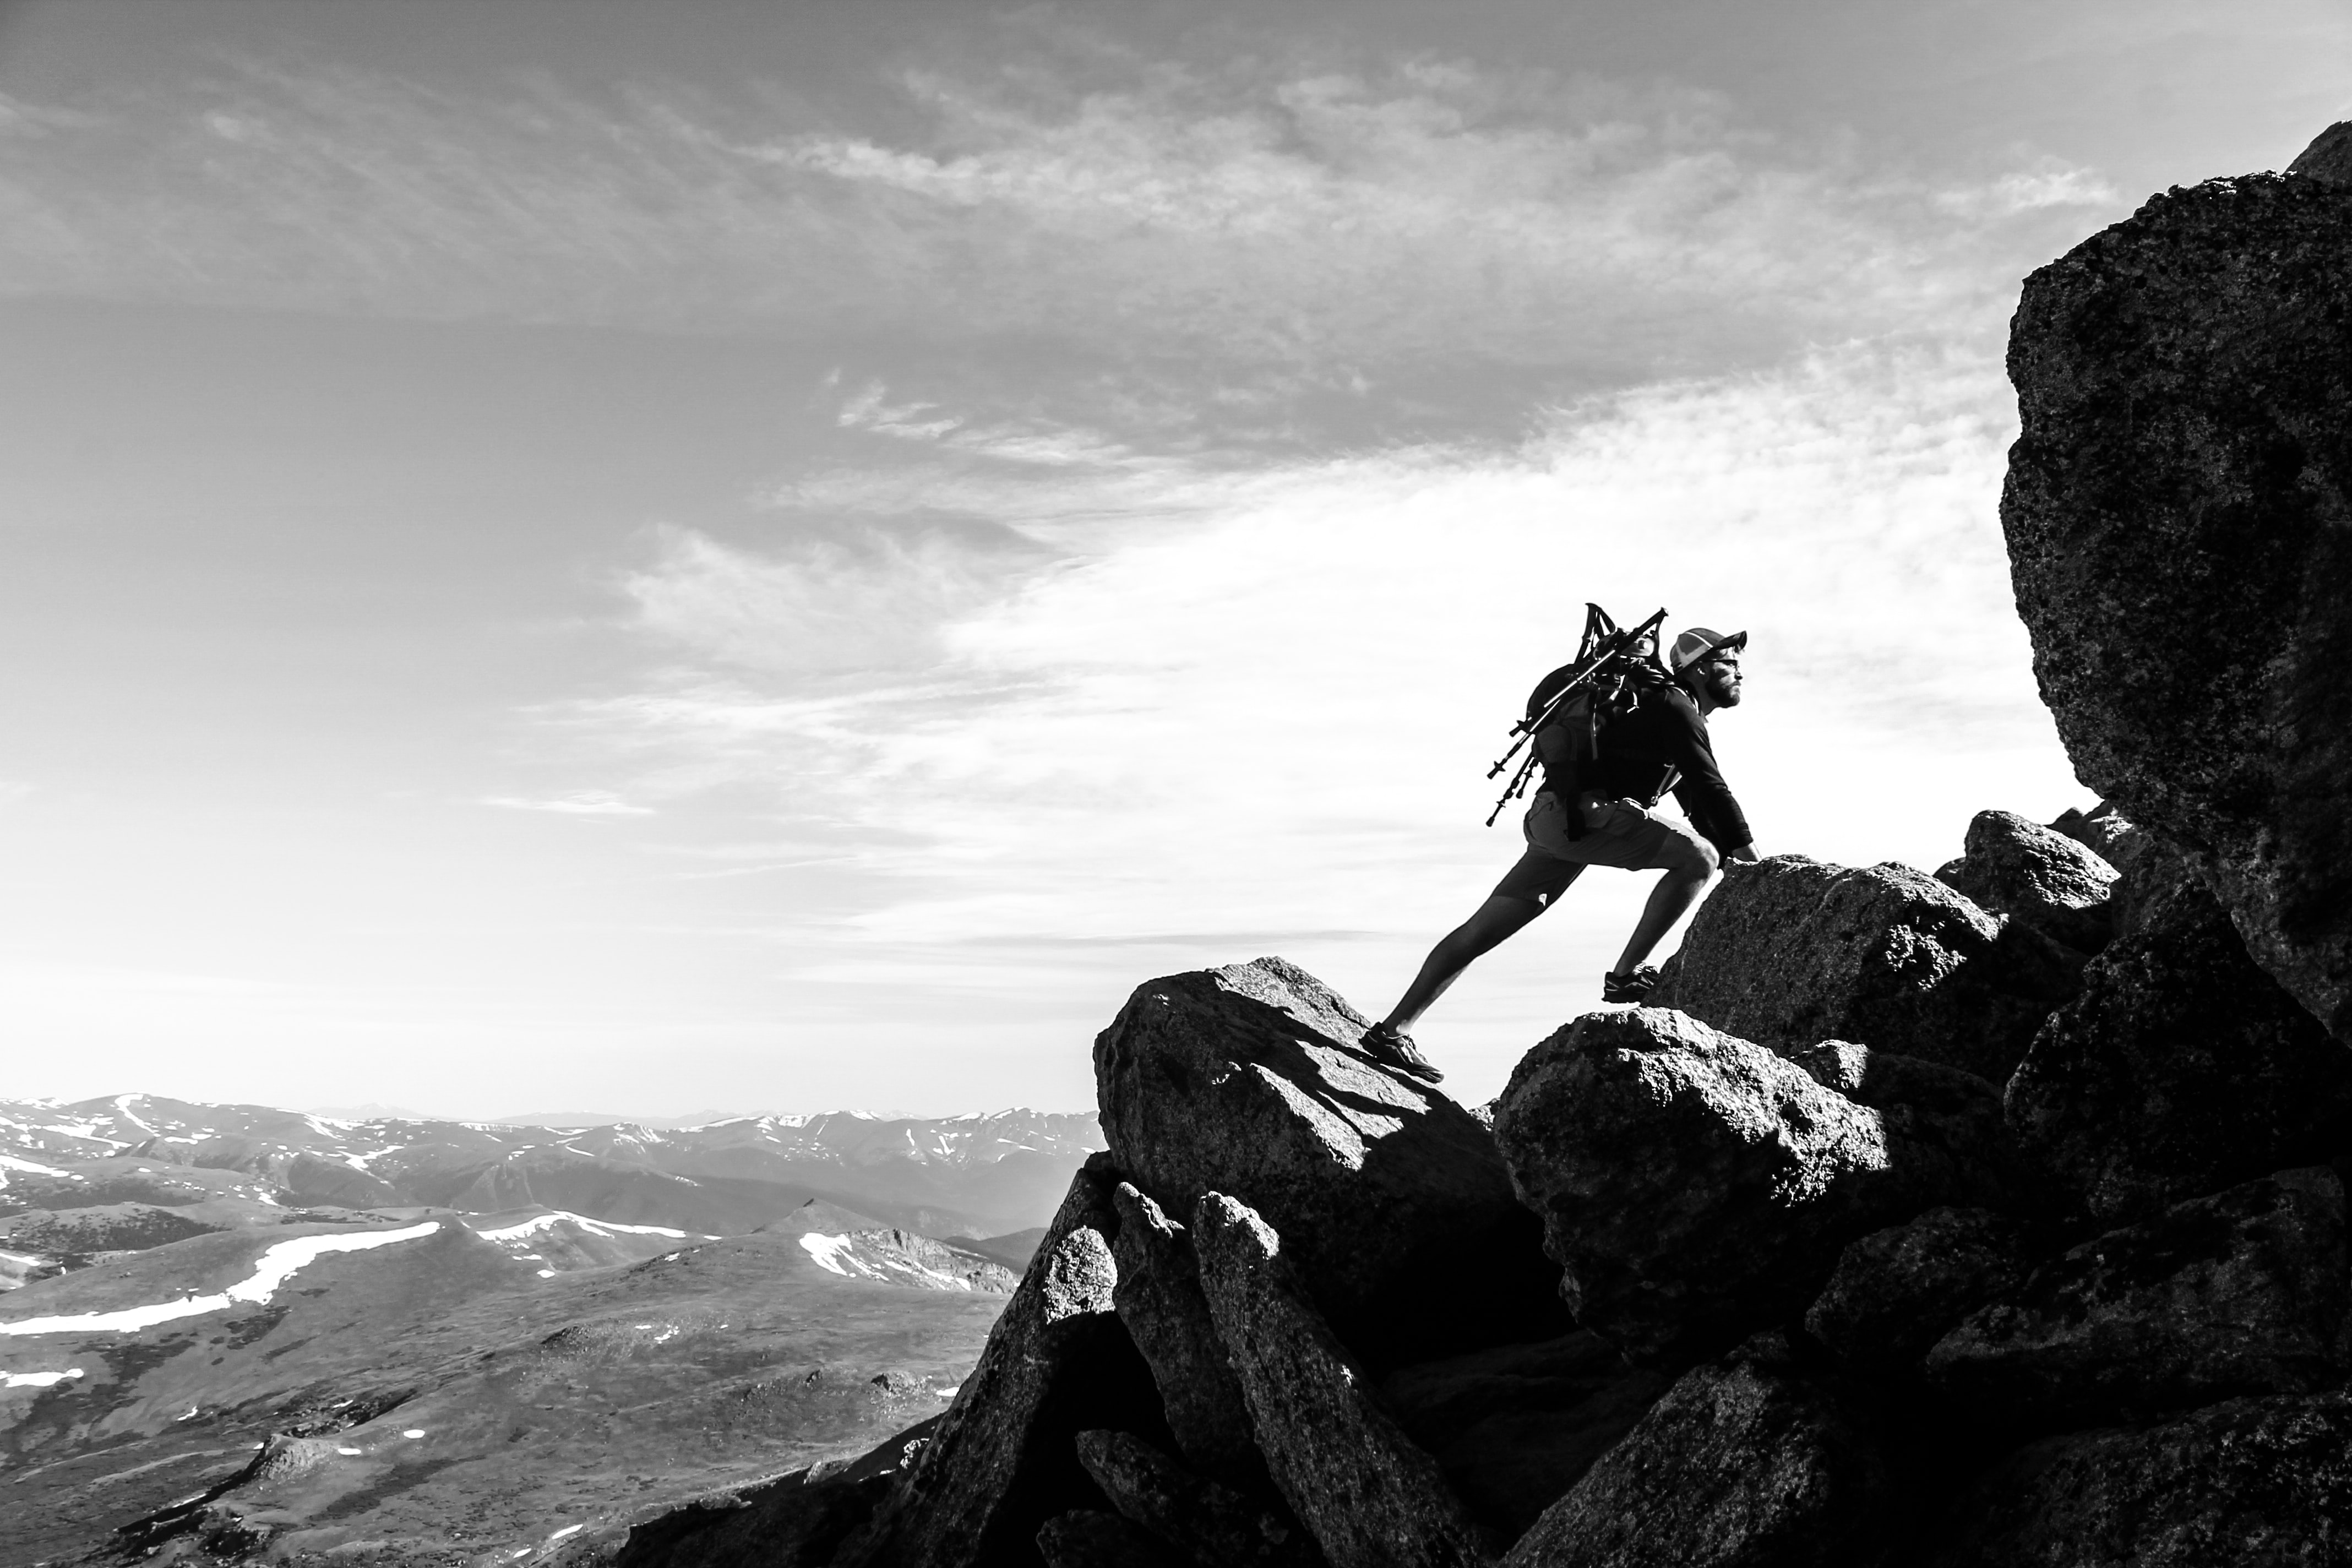 A black-and-white shot of a male rock climber against the mountain landscape.